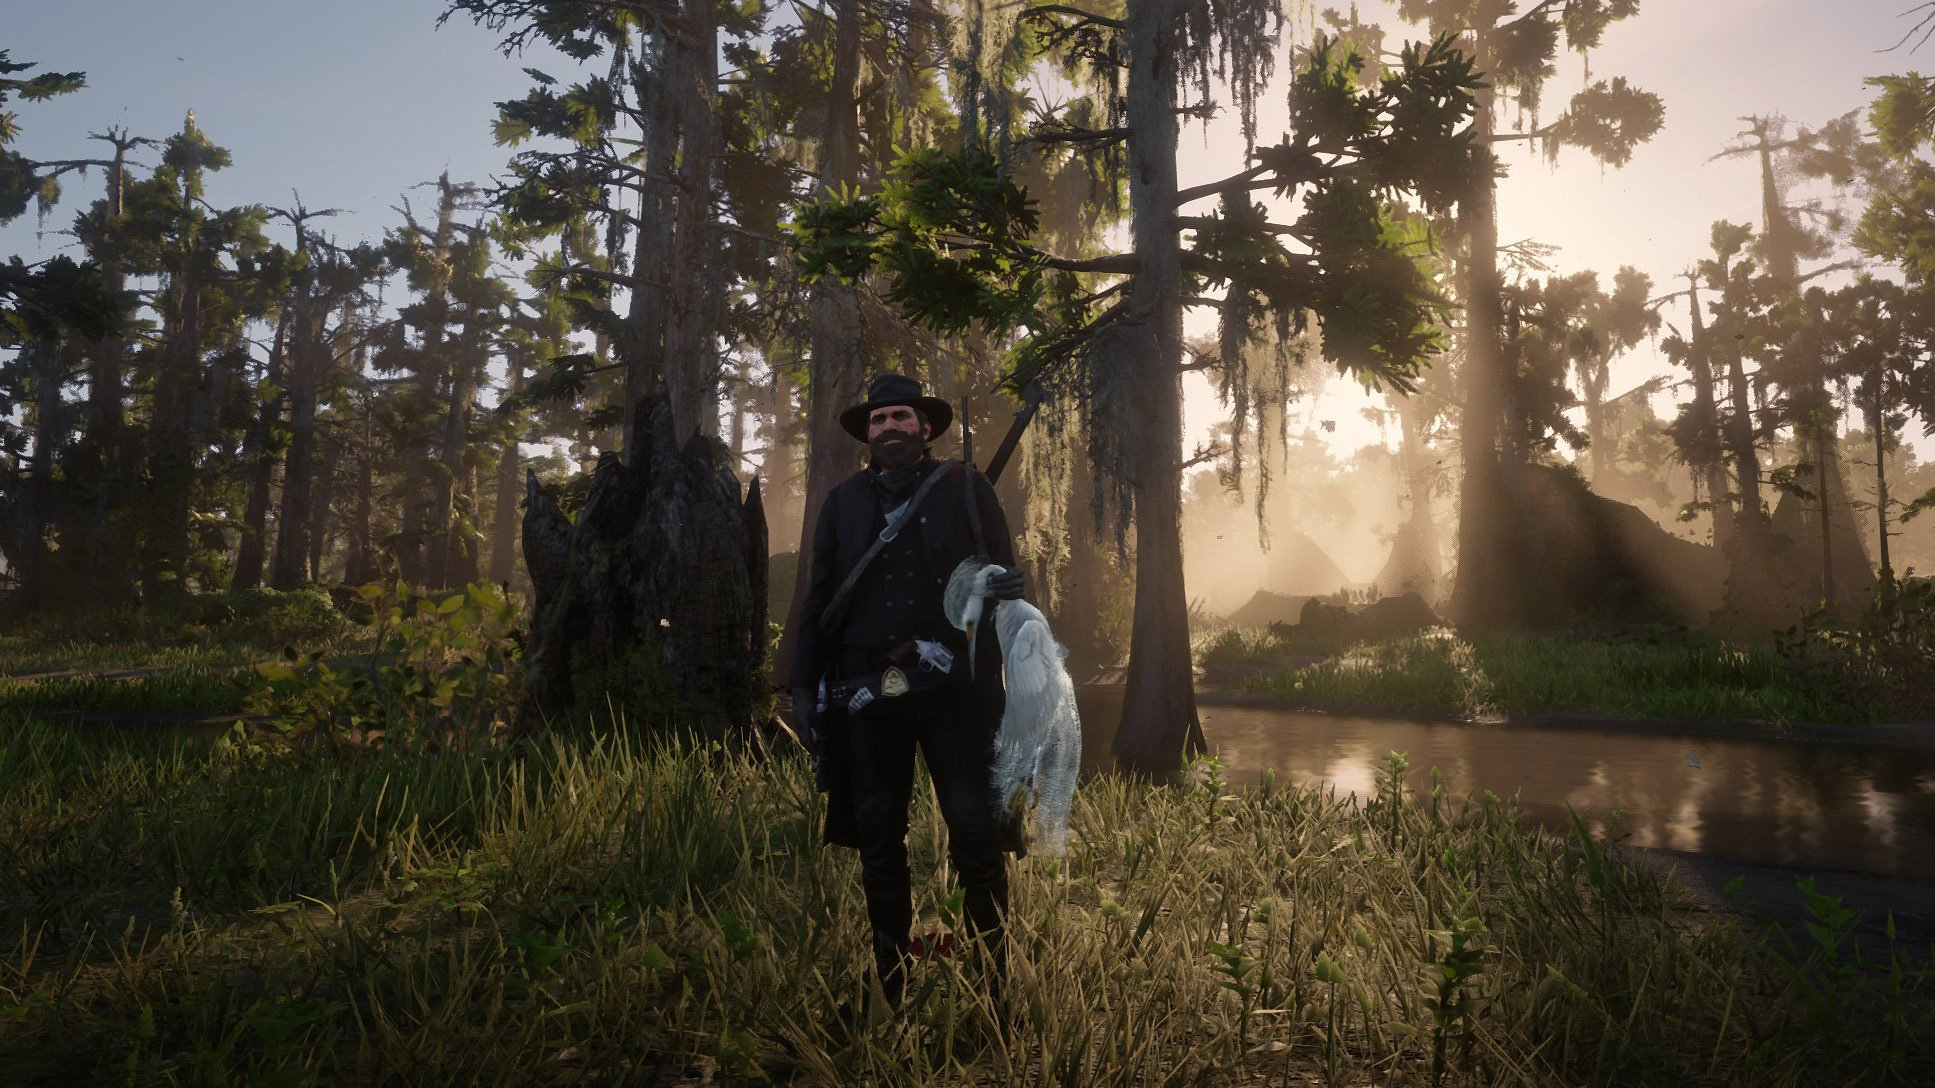 Snowy Egret location in Red Dead Redemption 2